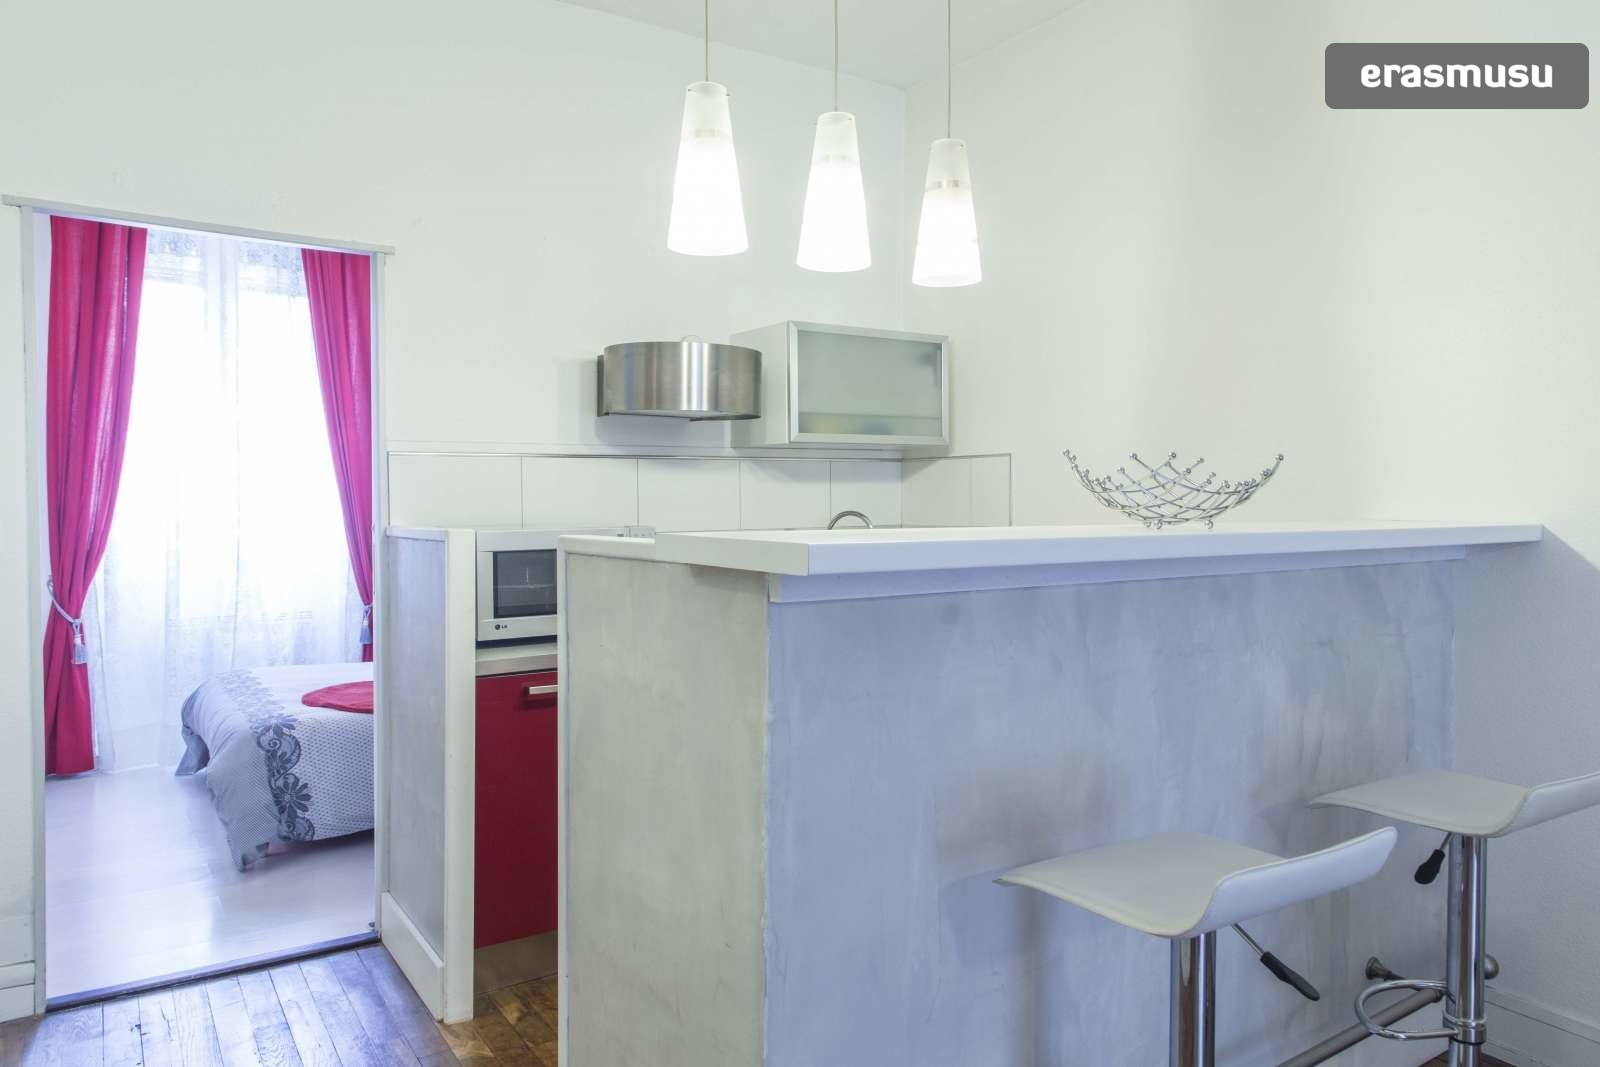 modern-luxurious-studio-apartment-rent-lyon-0709775813f286623c31